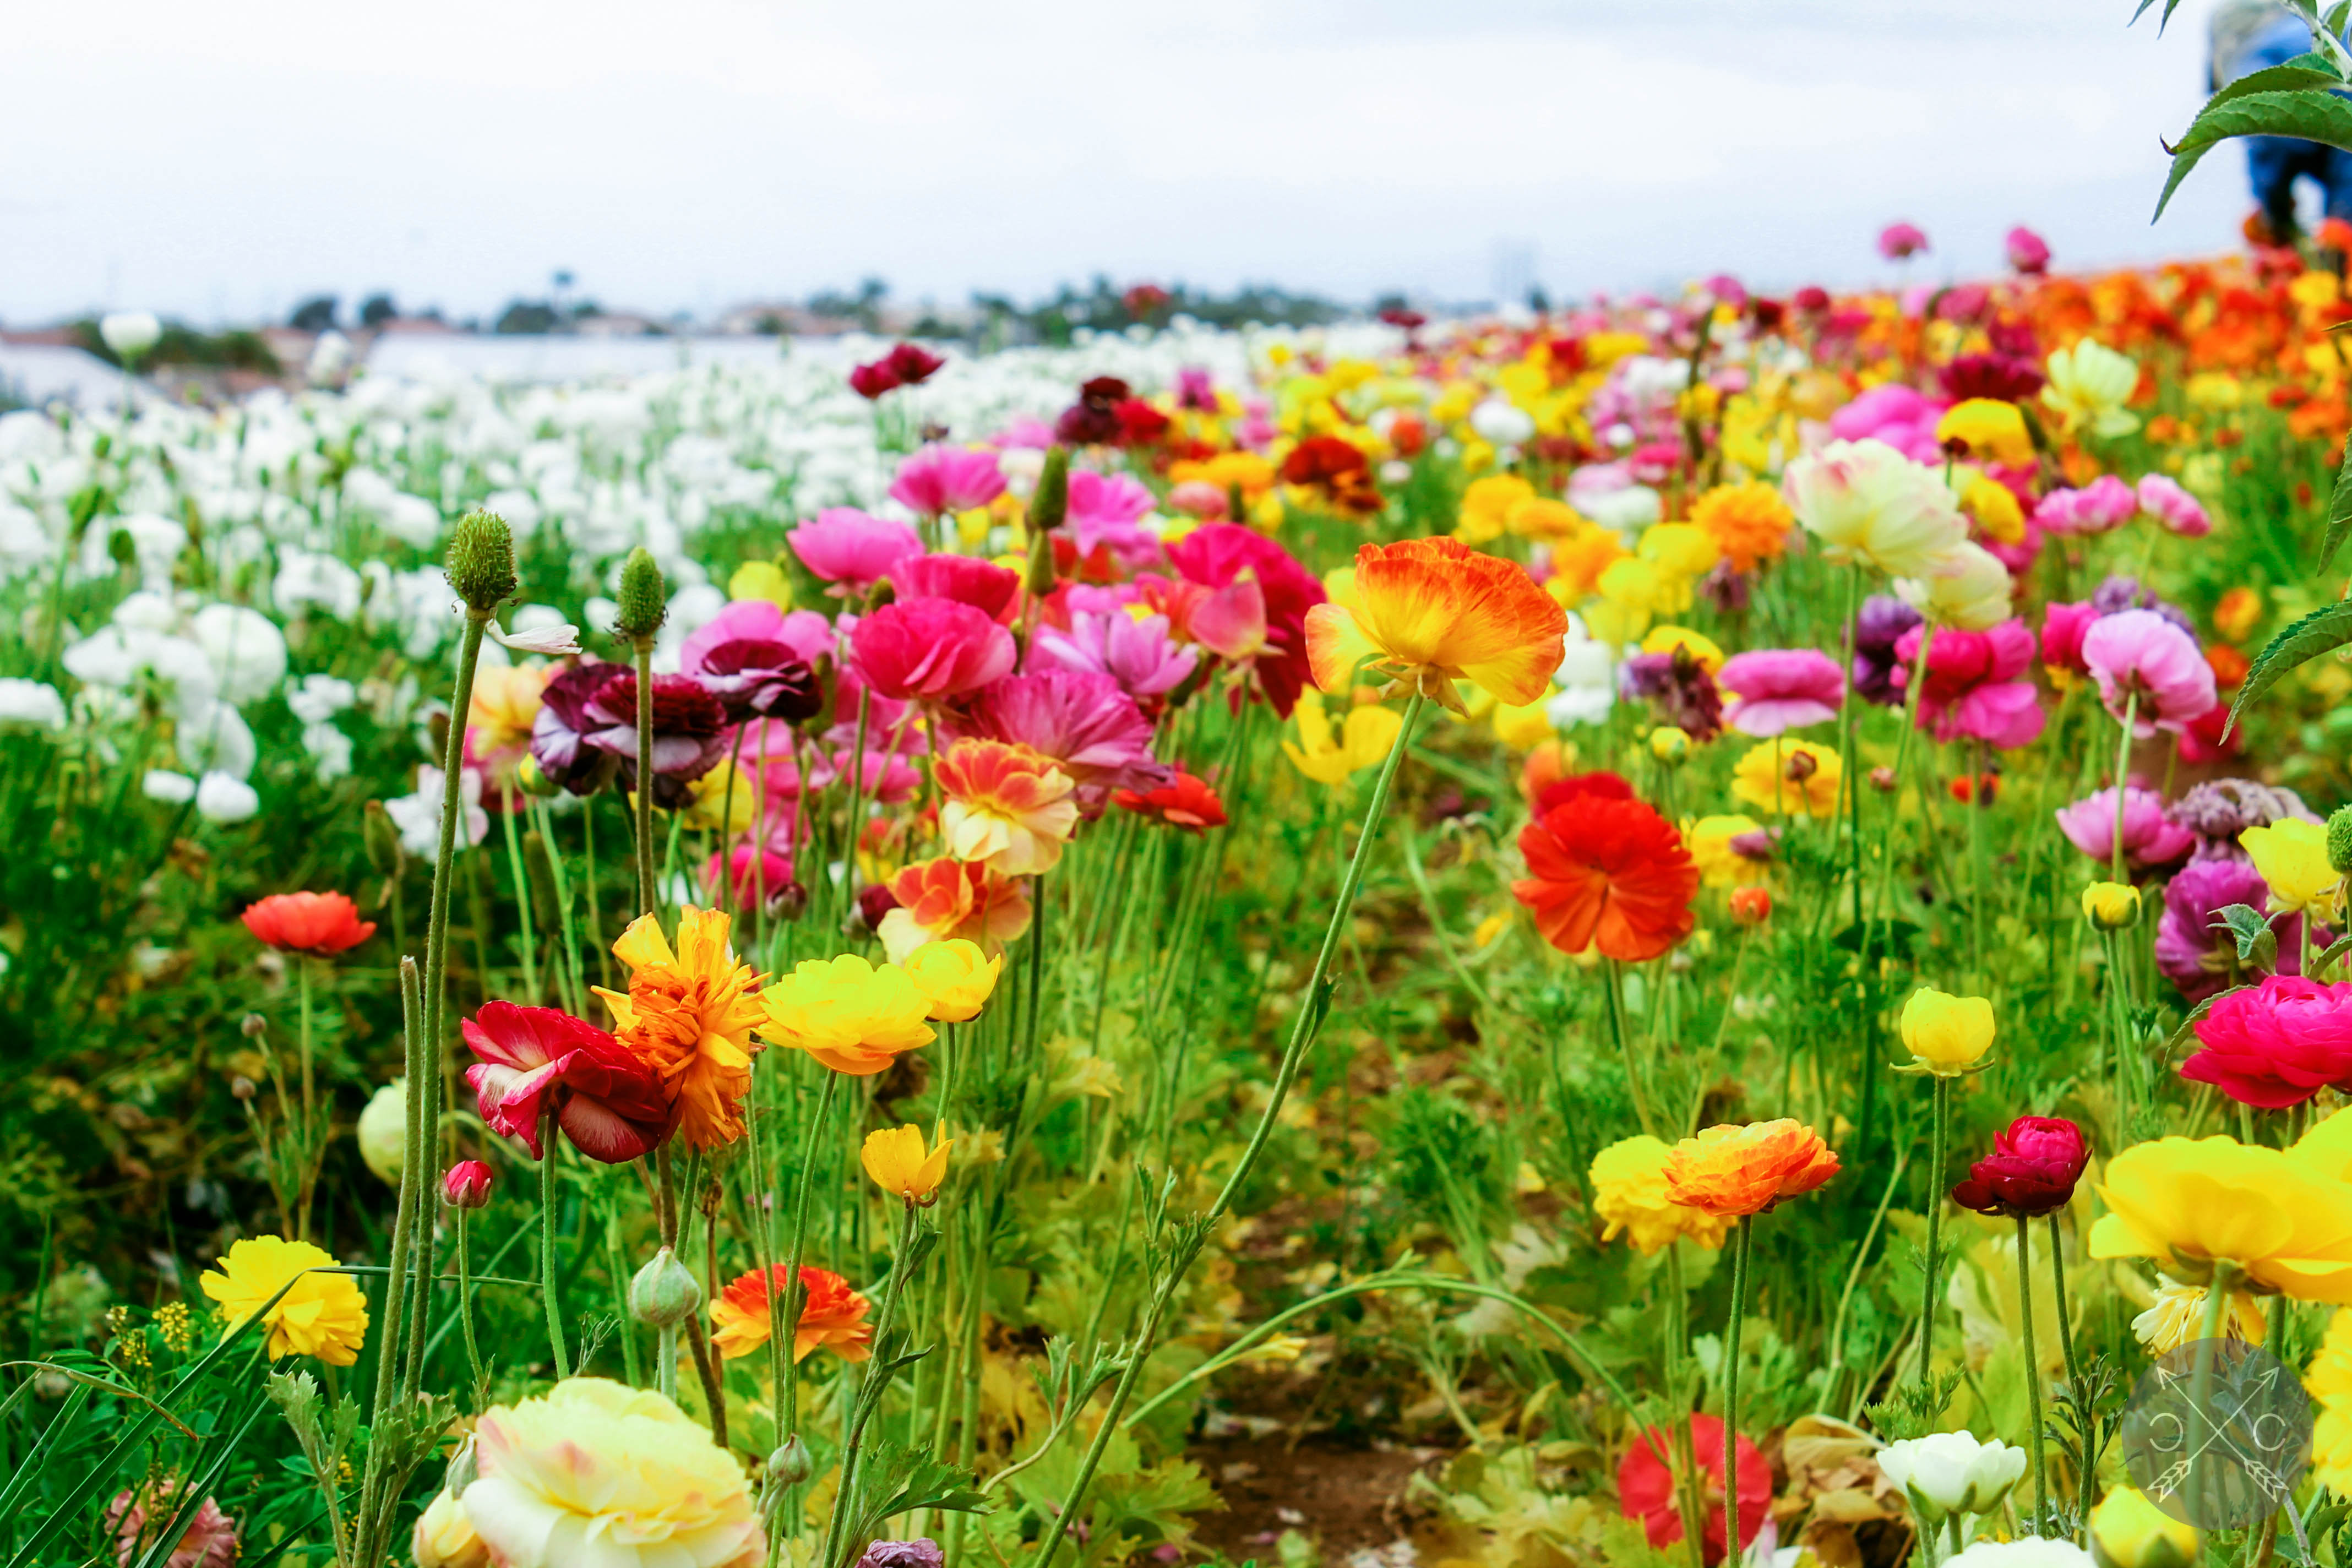 THE FLOWER FIELDS AT CARLSBAD RANCH Cultural Chromatics